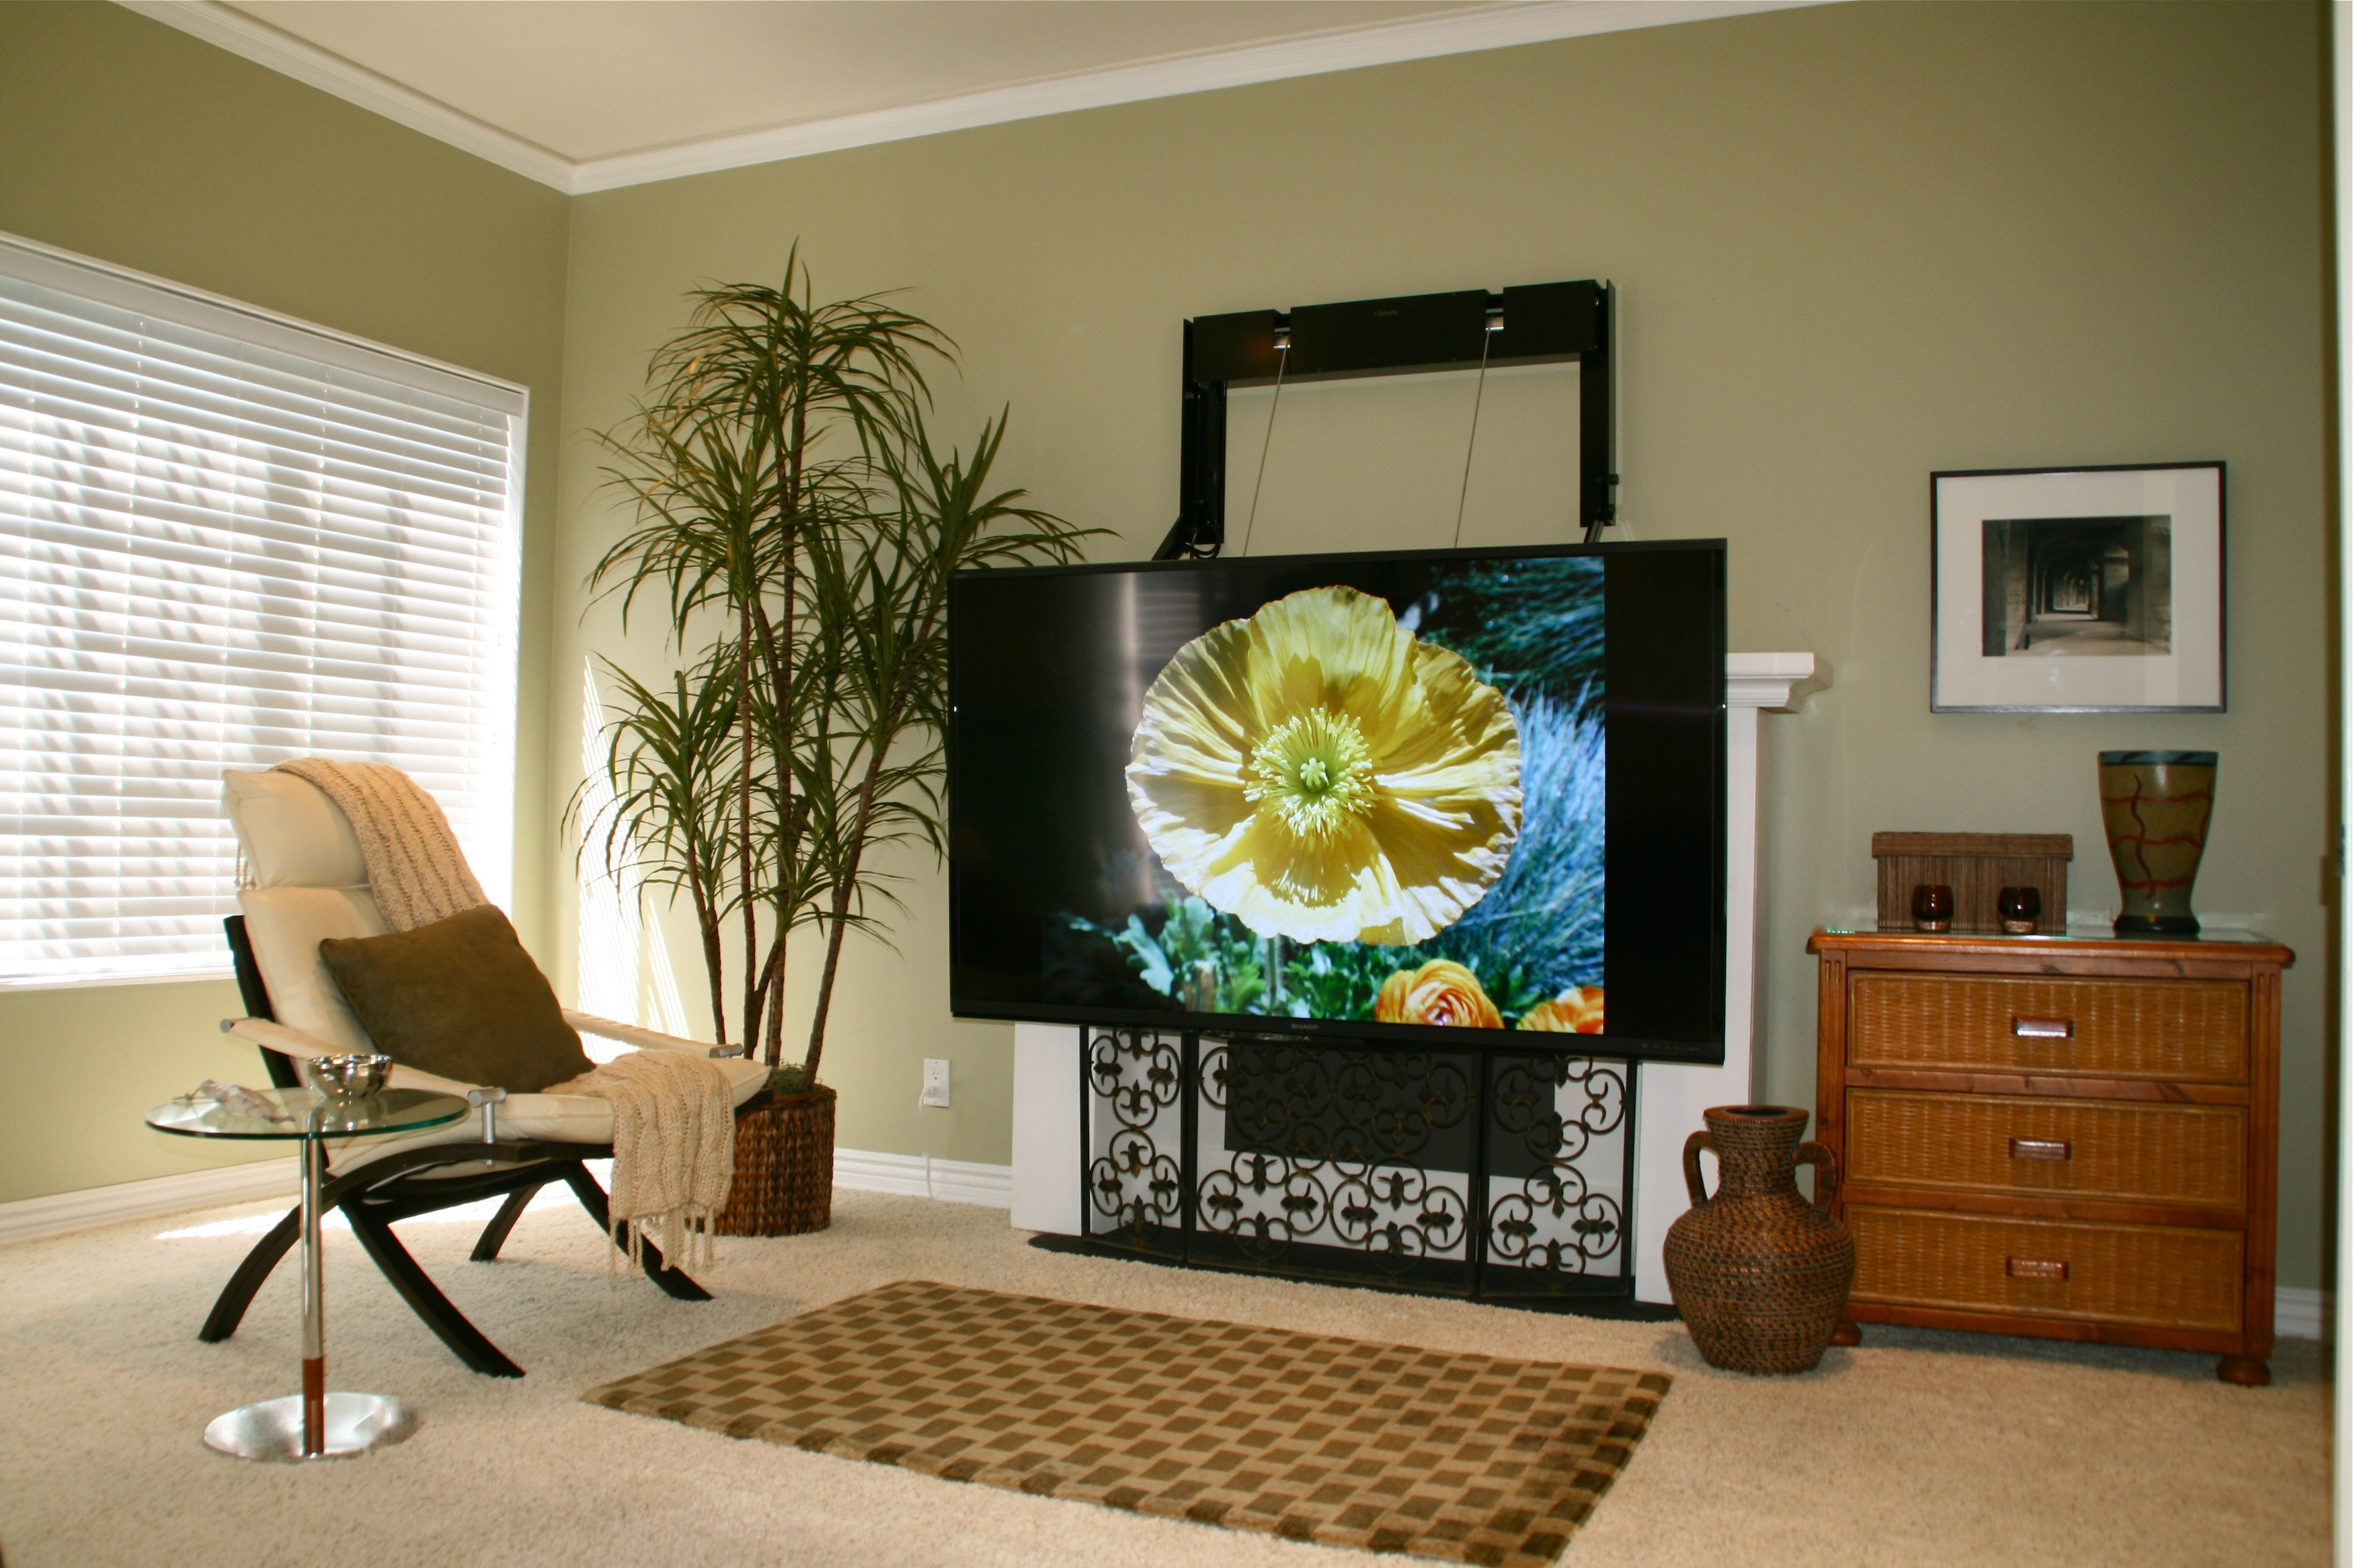 Fireplace Alternatives New Flatscreen Mount Provides Perfect Viewing Experience